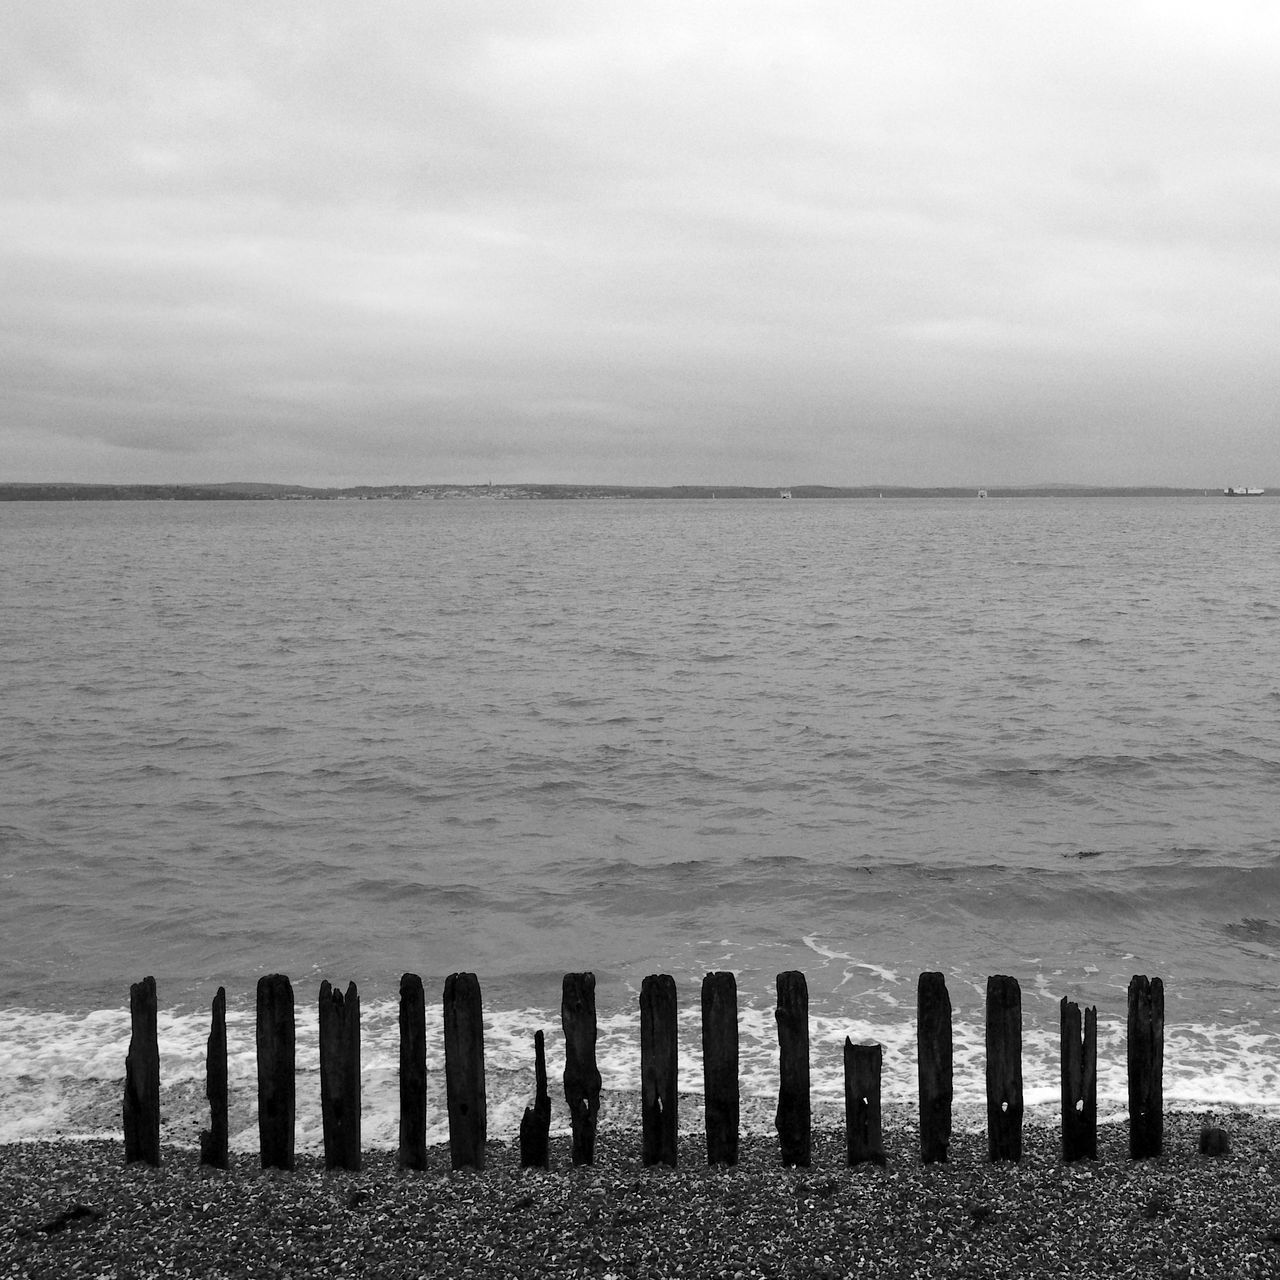 sea, water, tranquility, horizon over water, wooden post, sky, outdoors, no people, scenics, nature, cloud - sky, day, tranquil scene, beauty in nature, beach